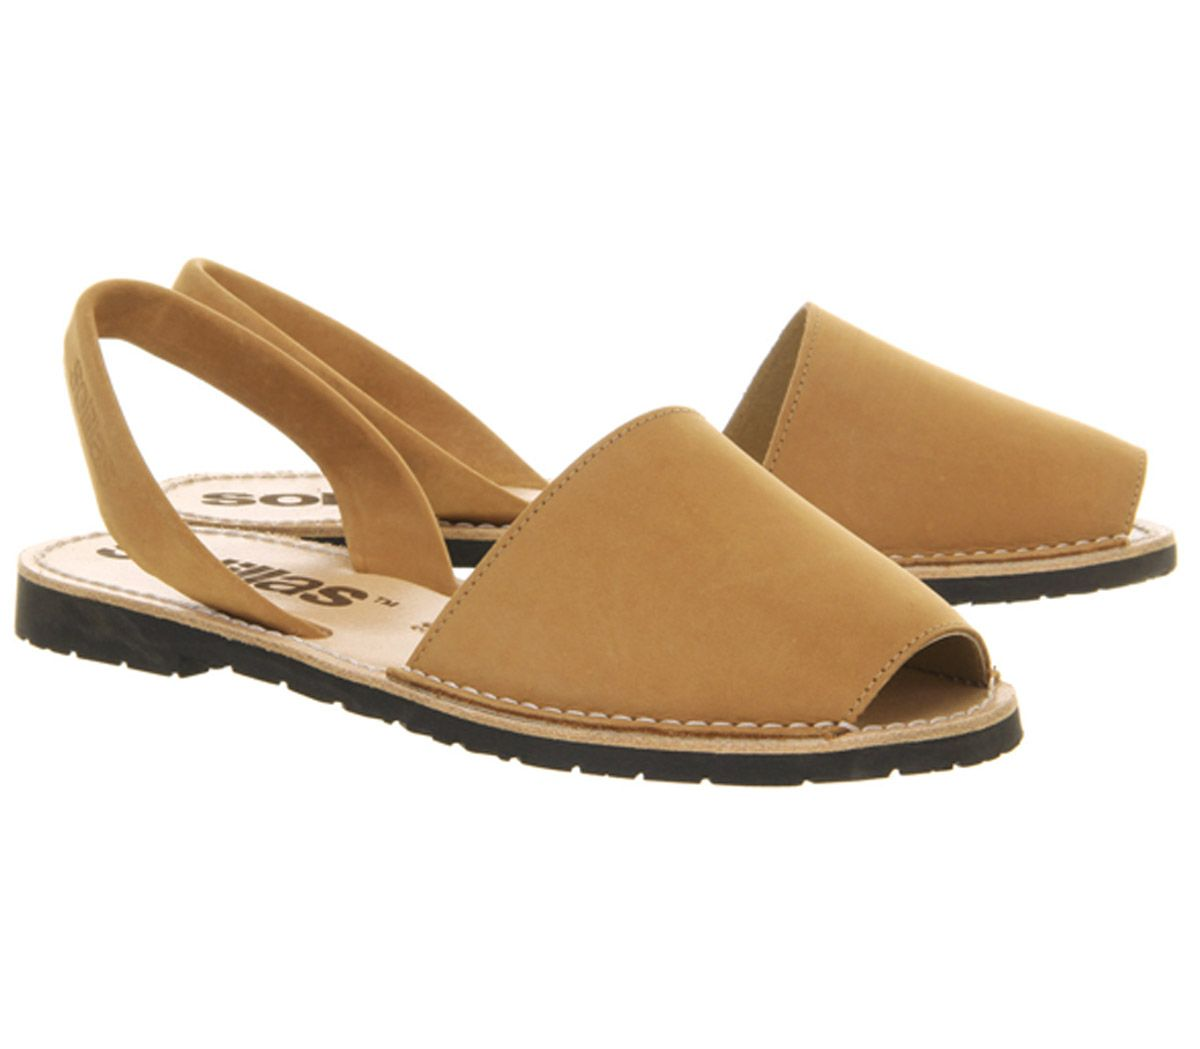 Womens-Solillas-Solillas-Sandals-Tan-Leather-Sandals thumbnail 8